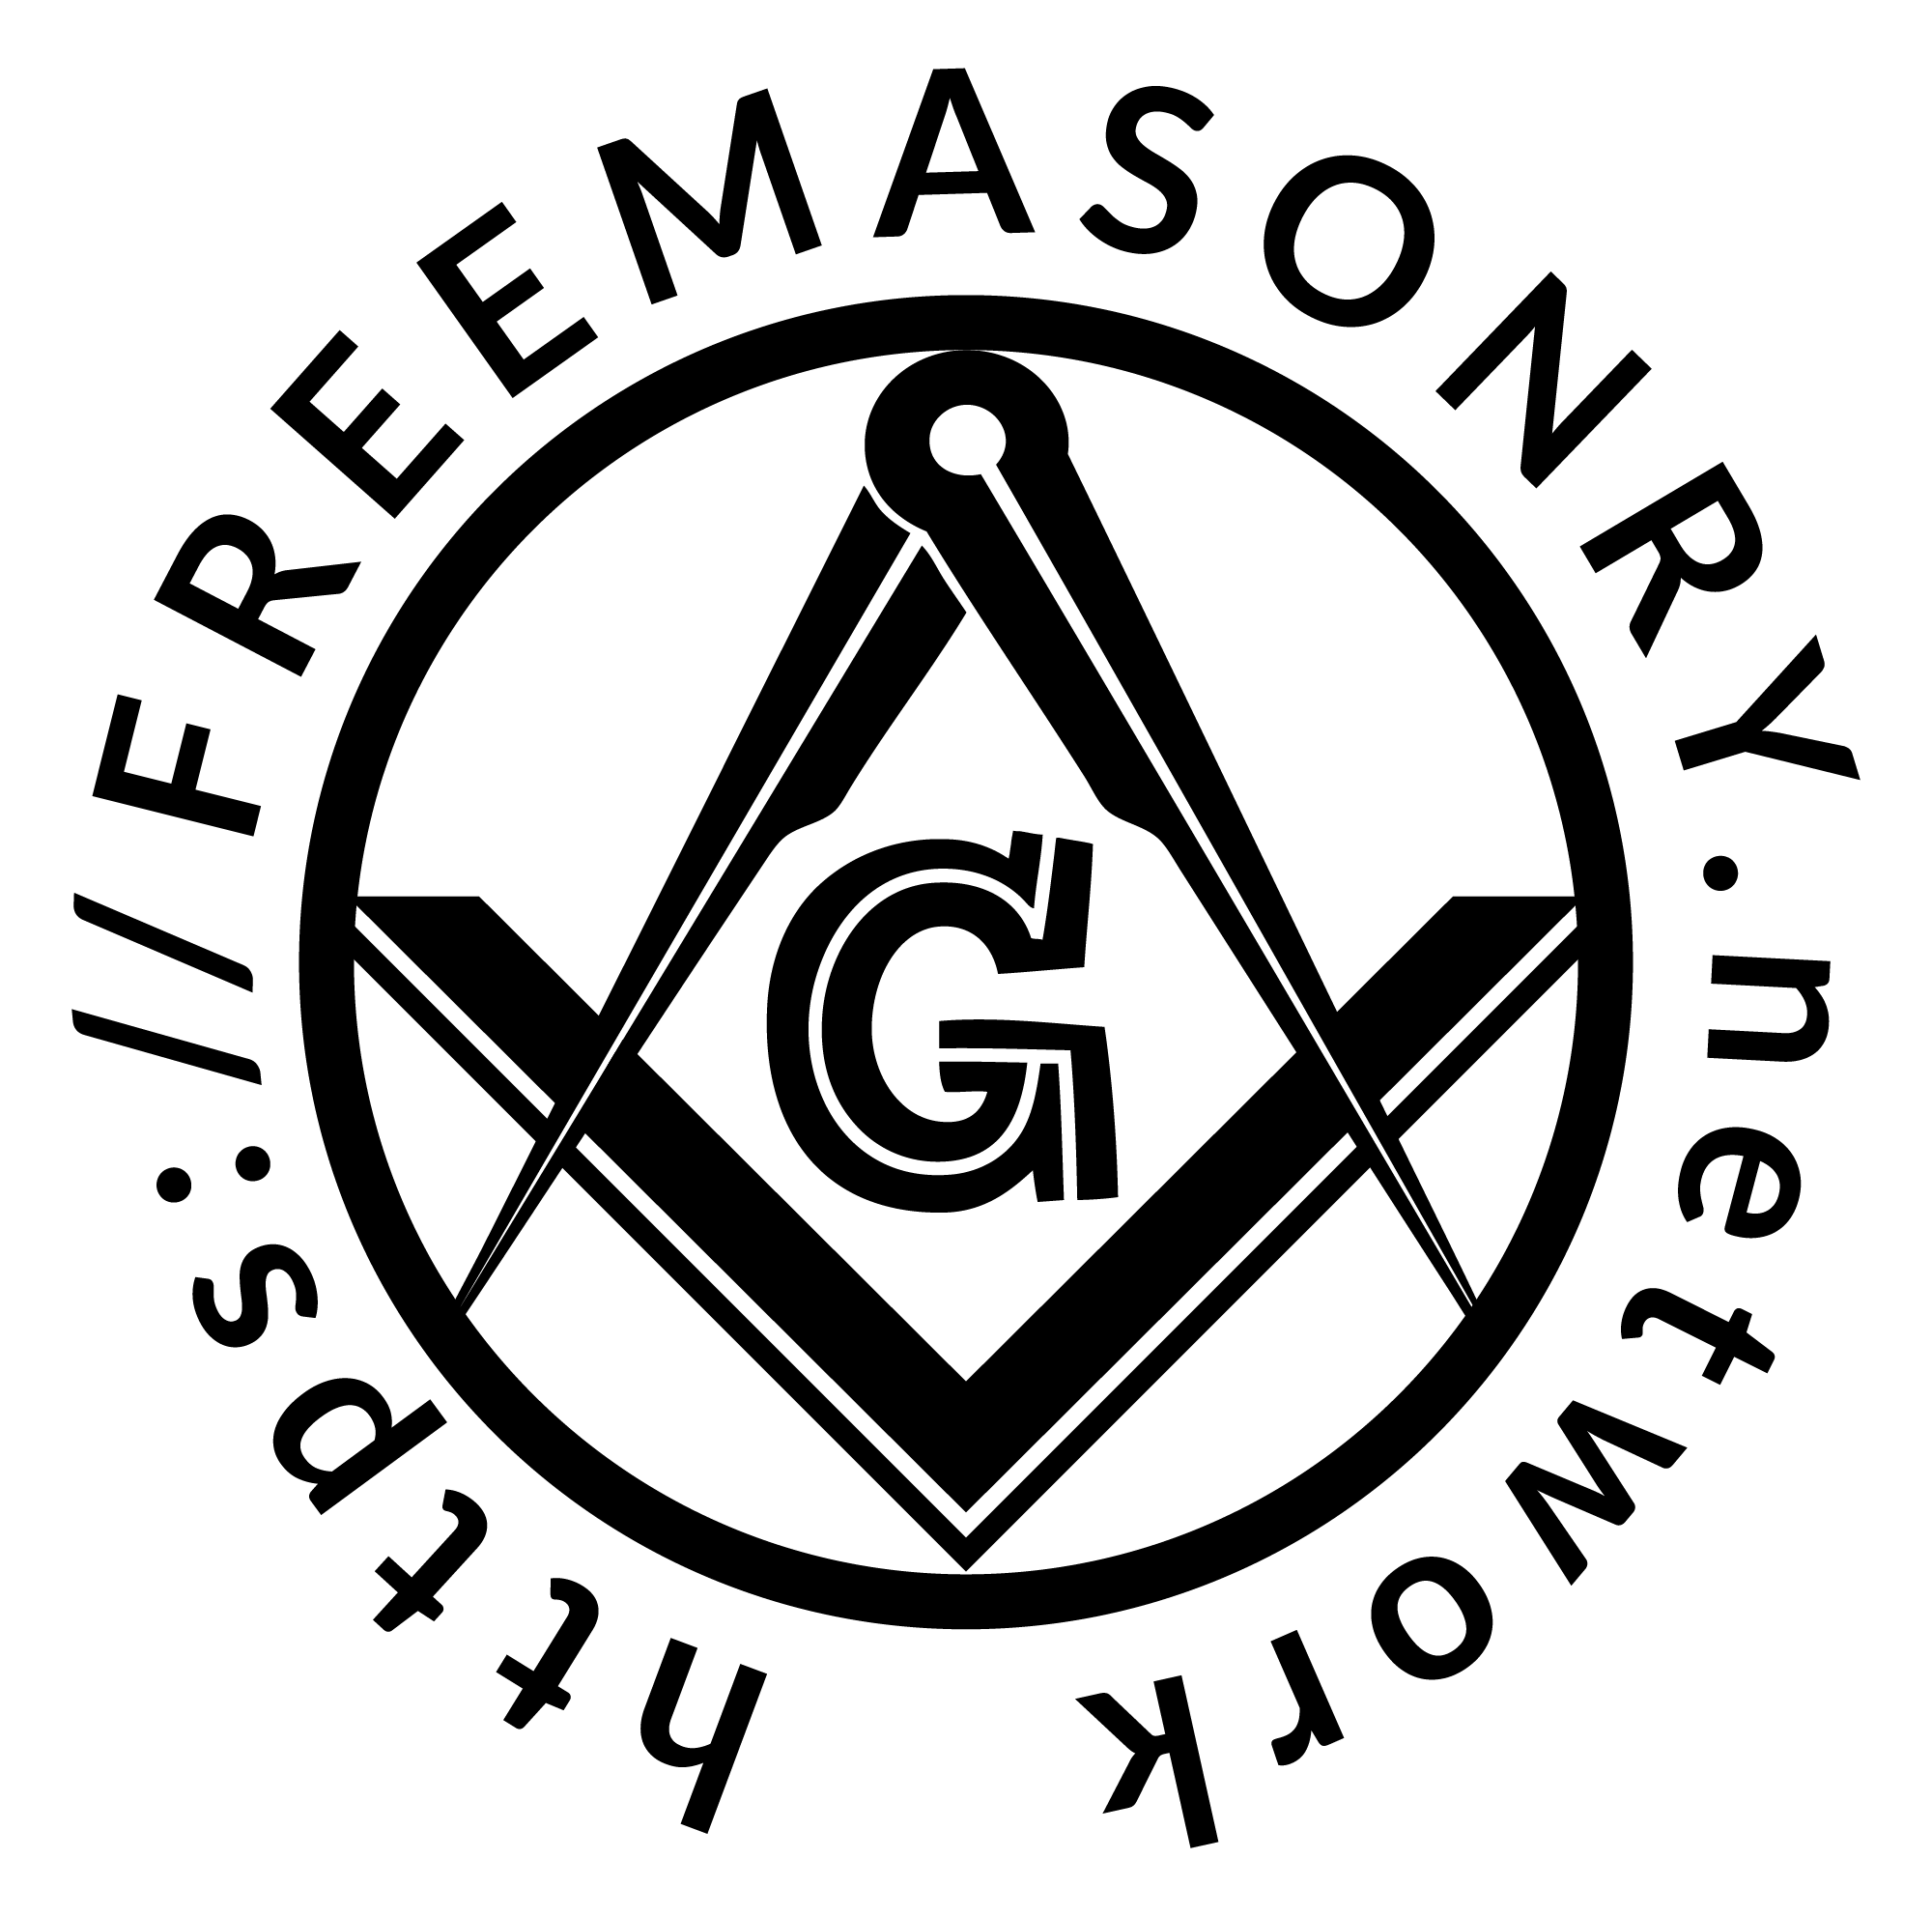 Freemasonry in Canada, Canadian Freemasonry